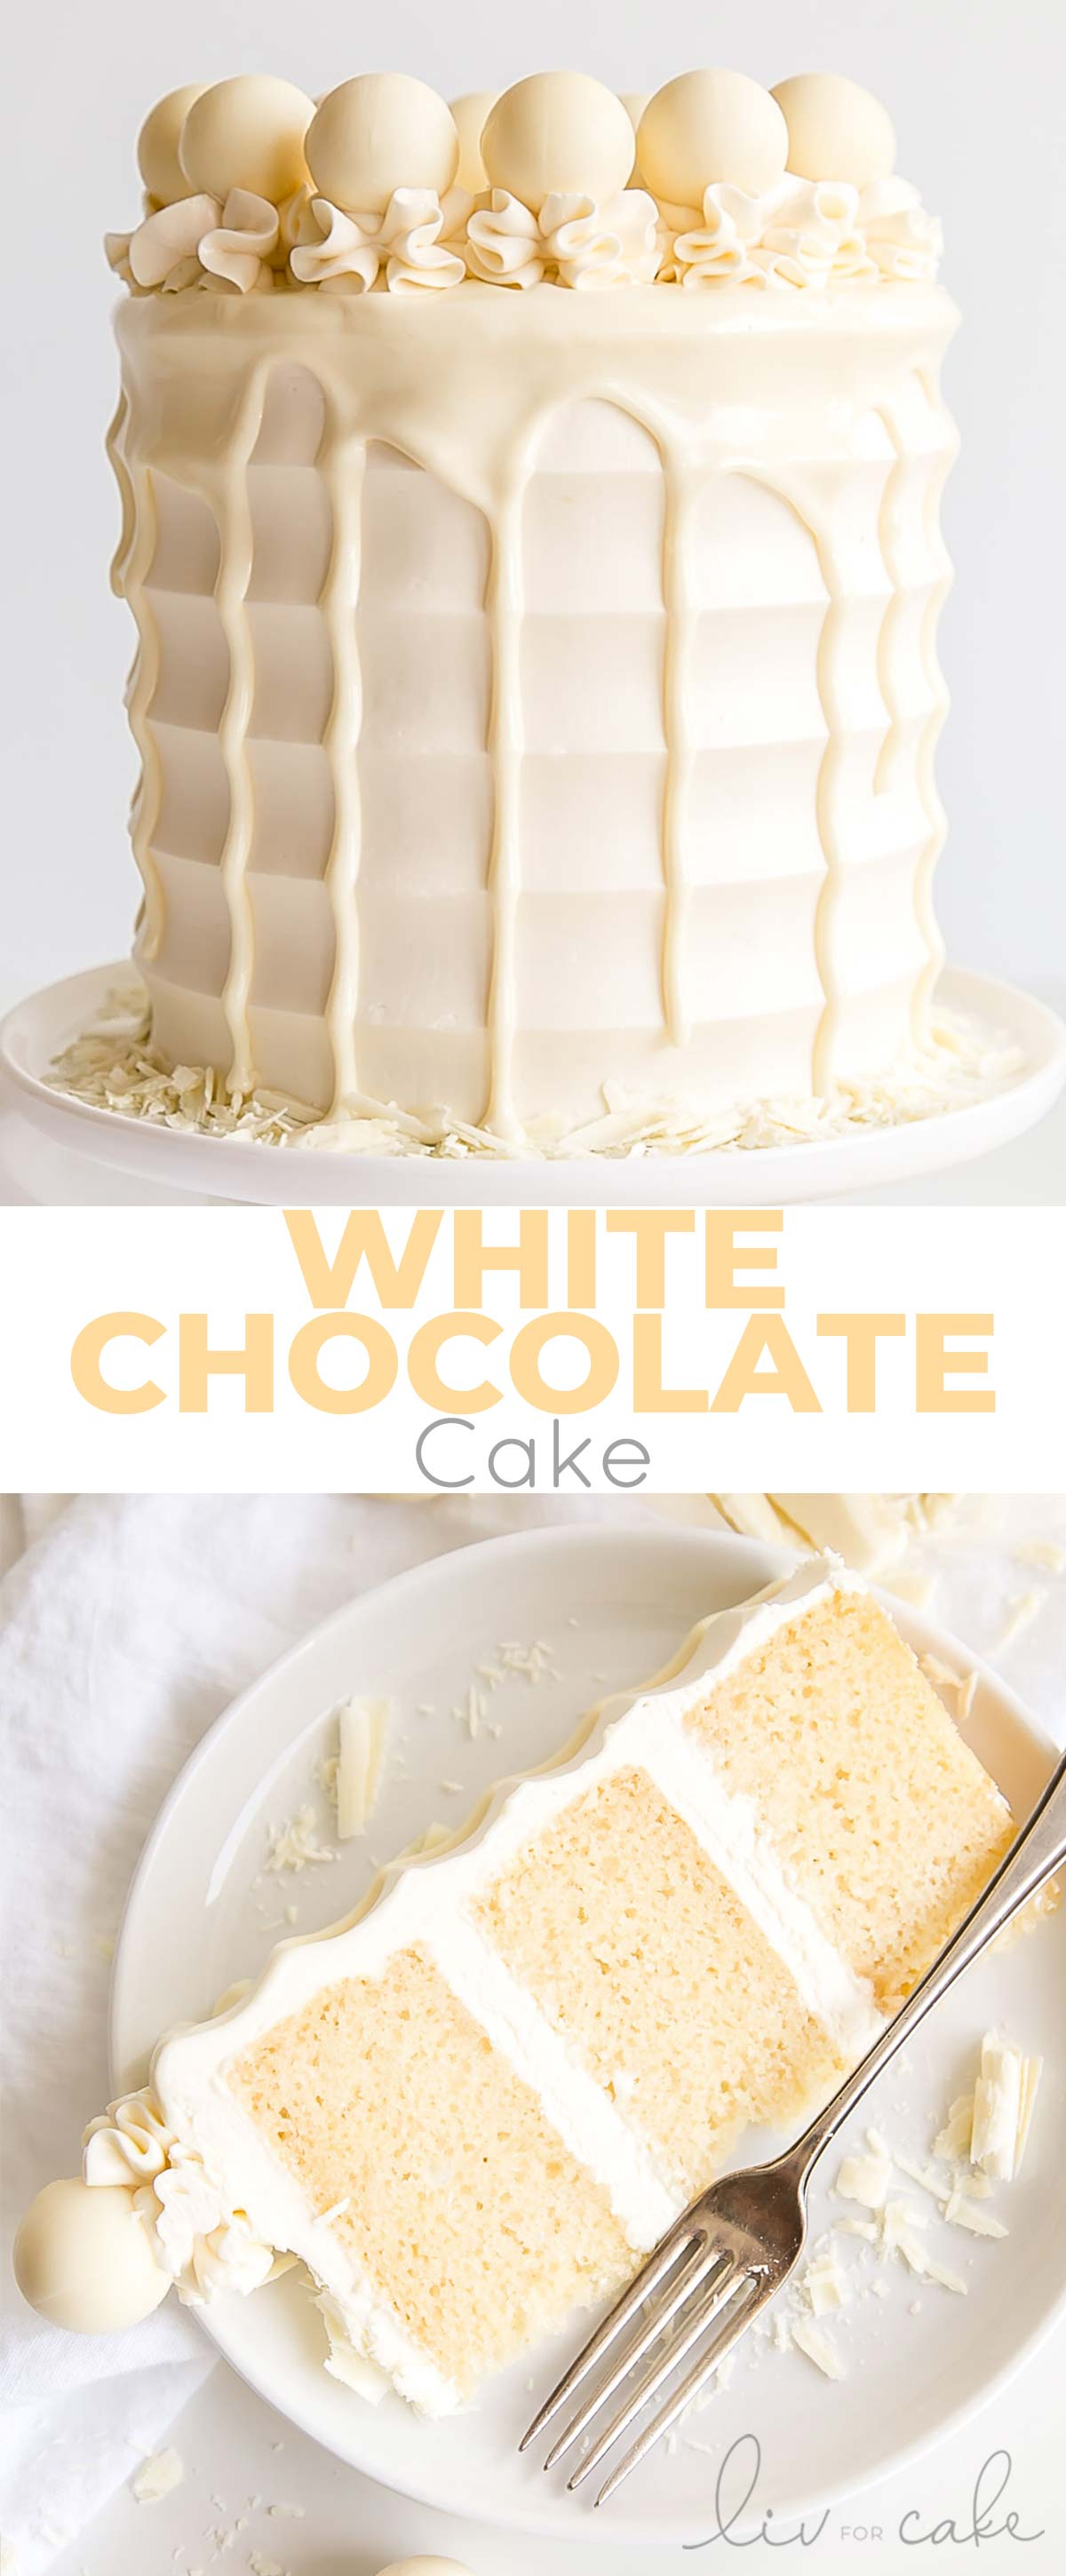 White Chocolate Cake collage